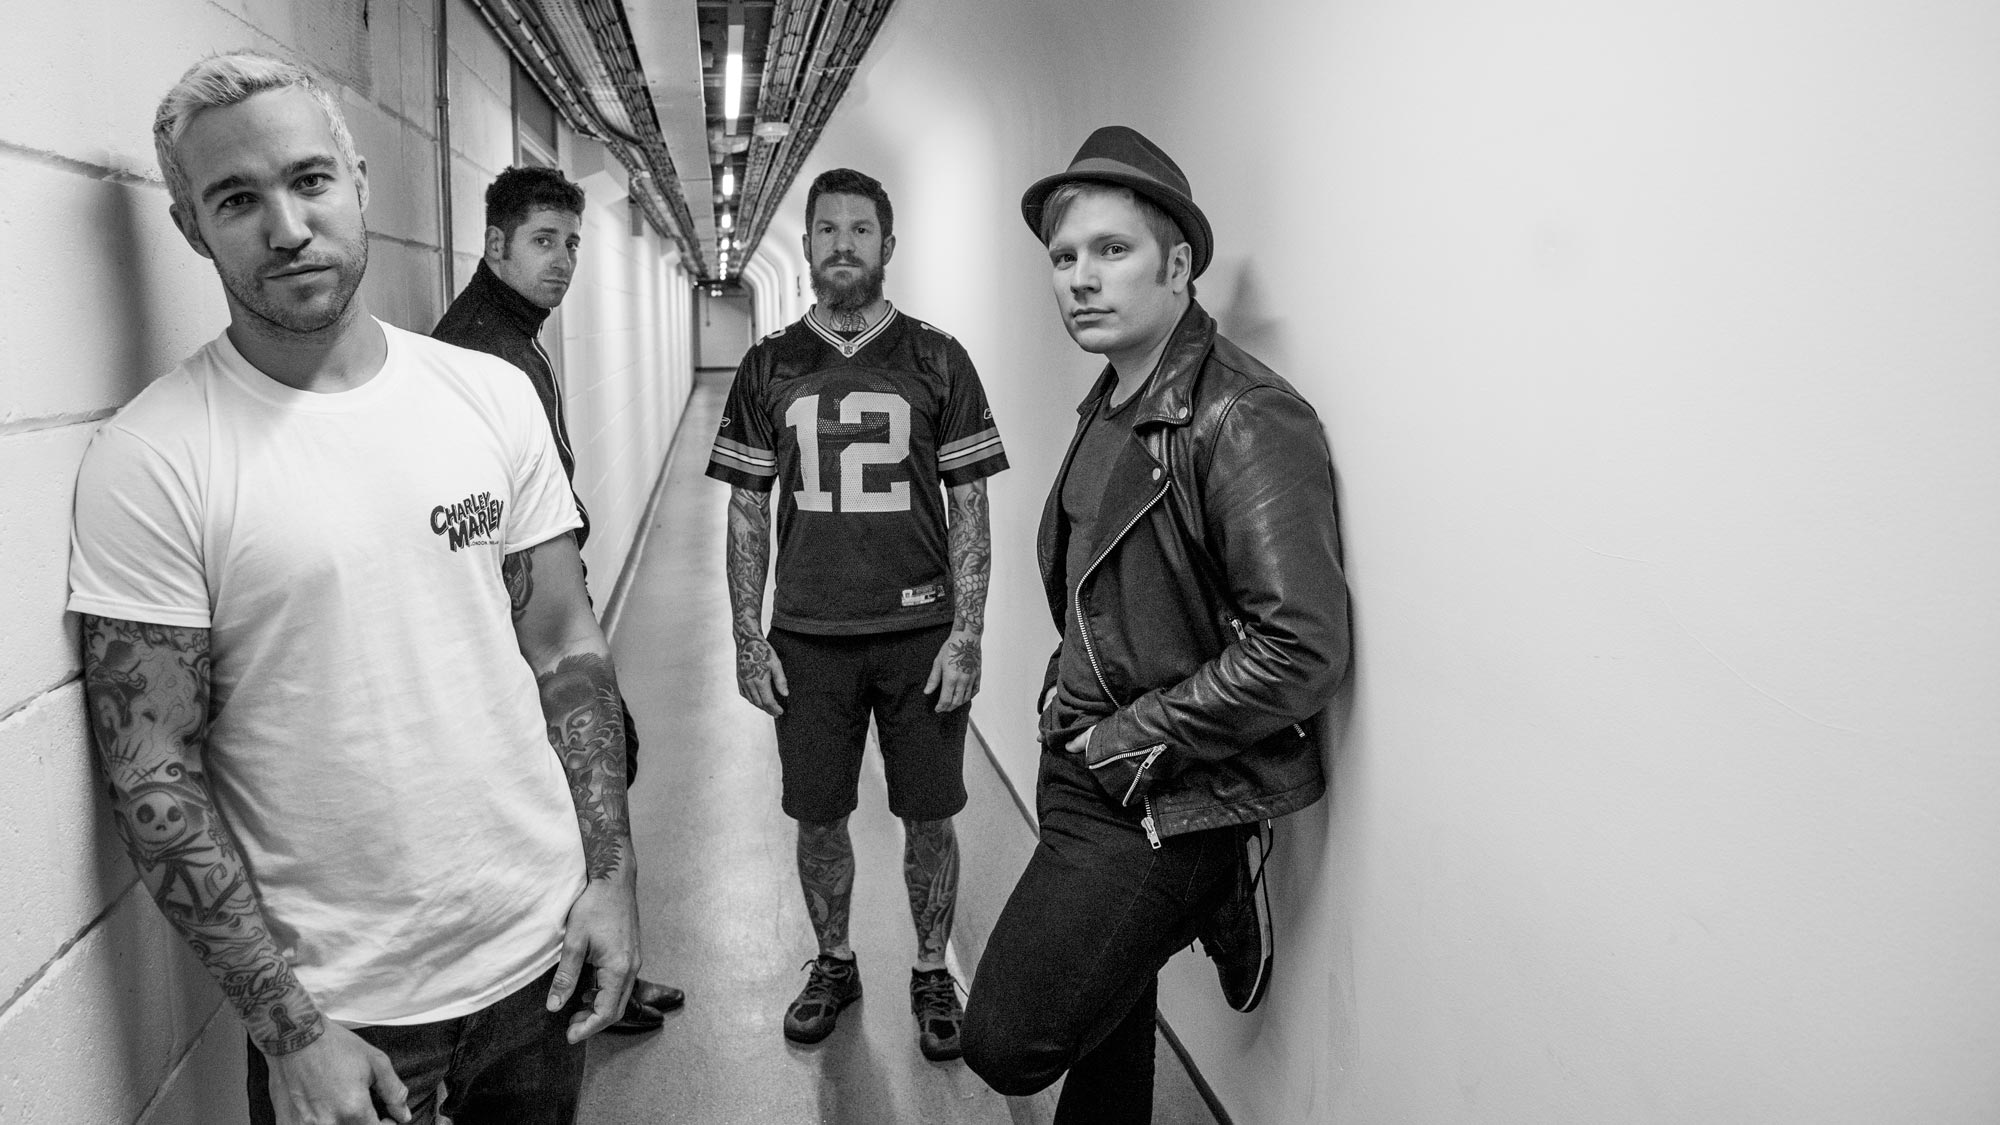 Fall Out Boy Wallpaper Mania Op Ed Fall Out Boy Do Not Need You Or Me To Defend Them